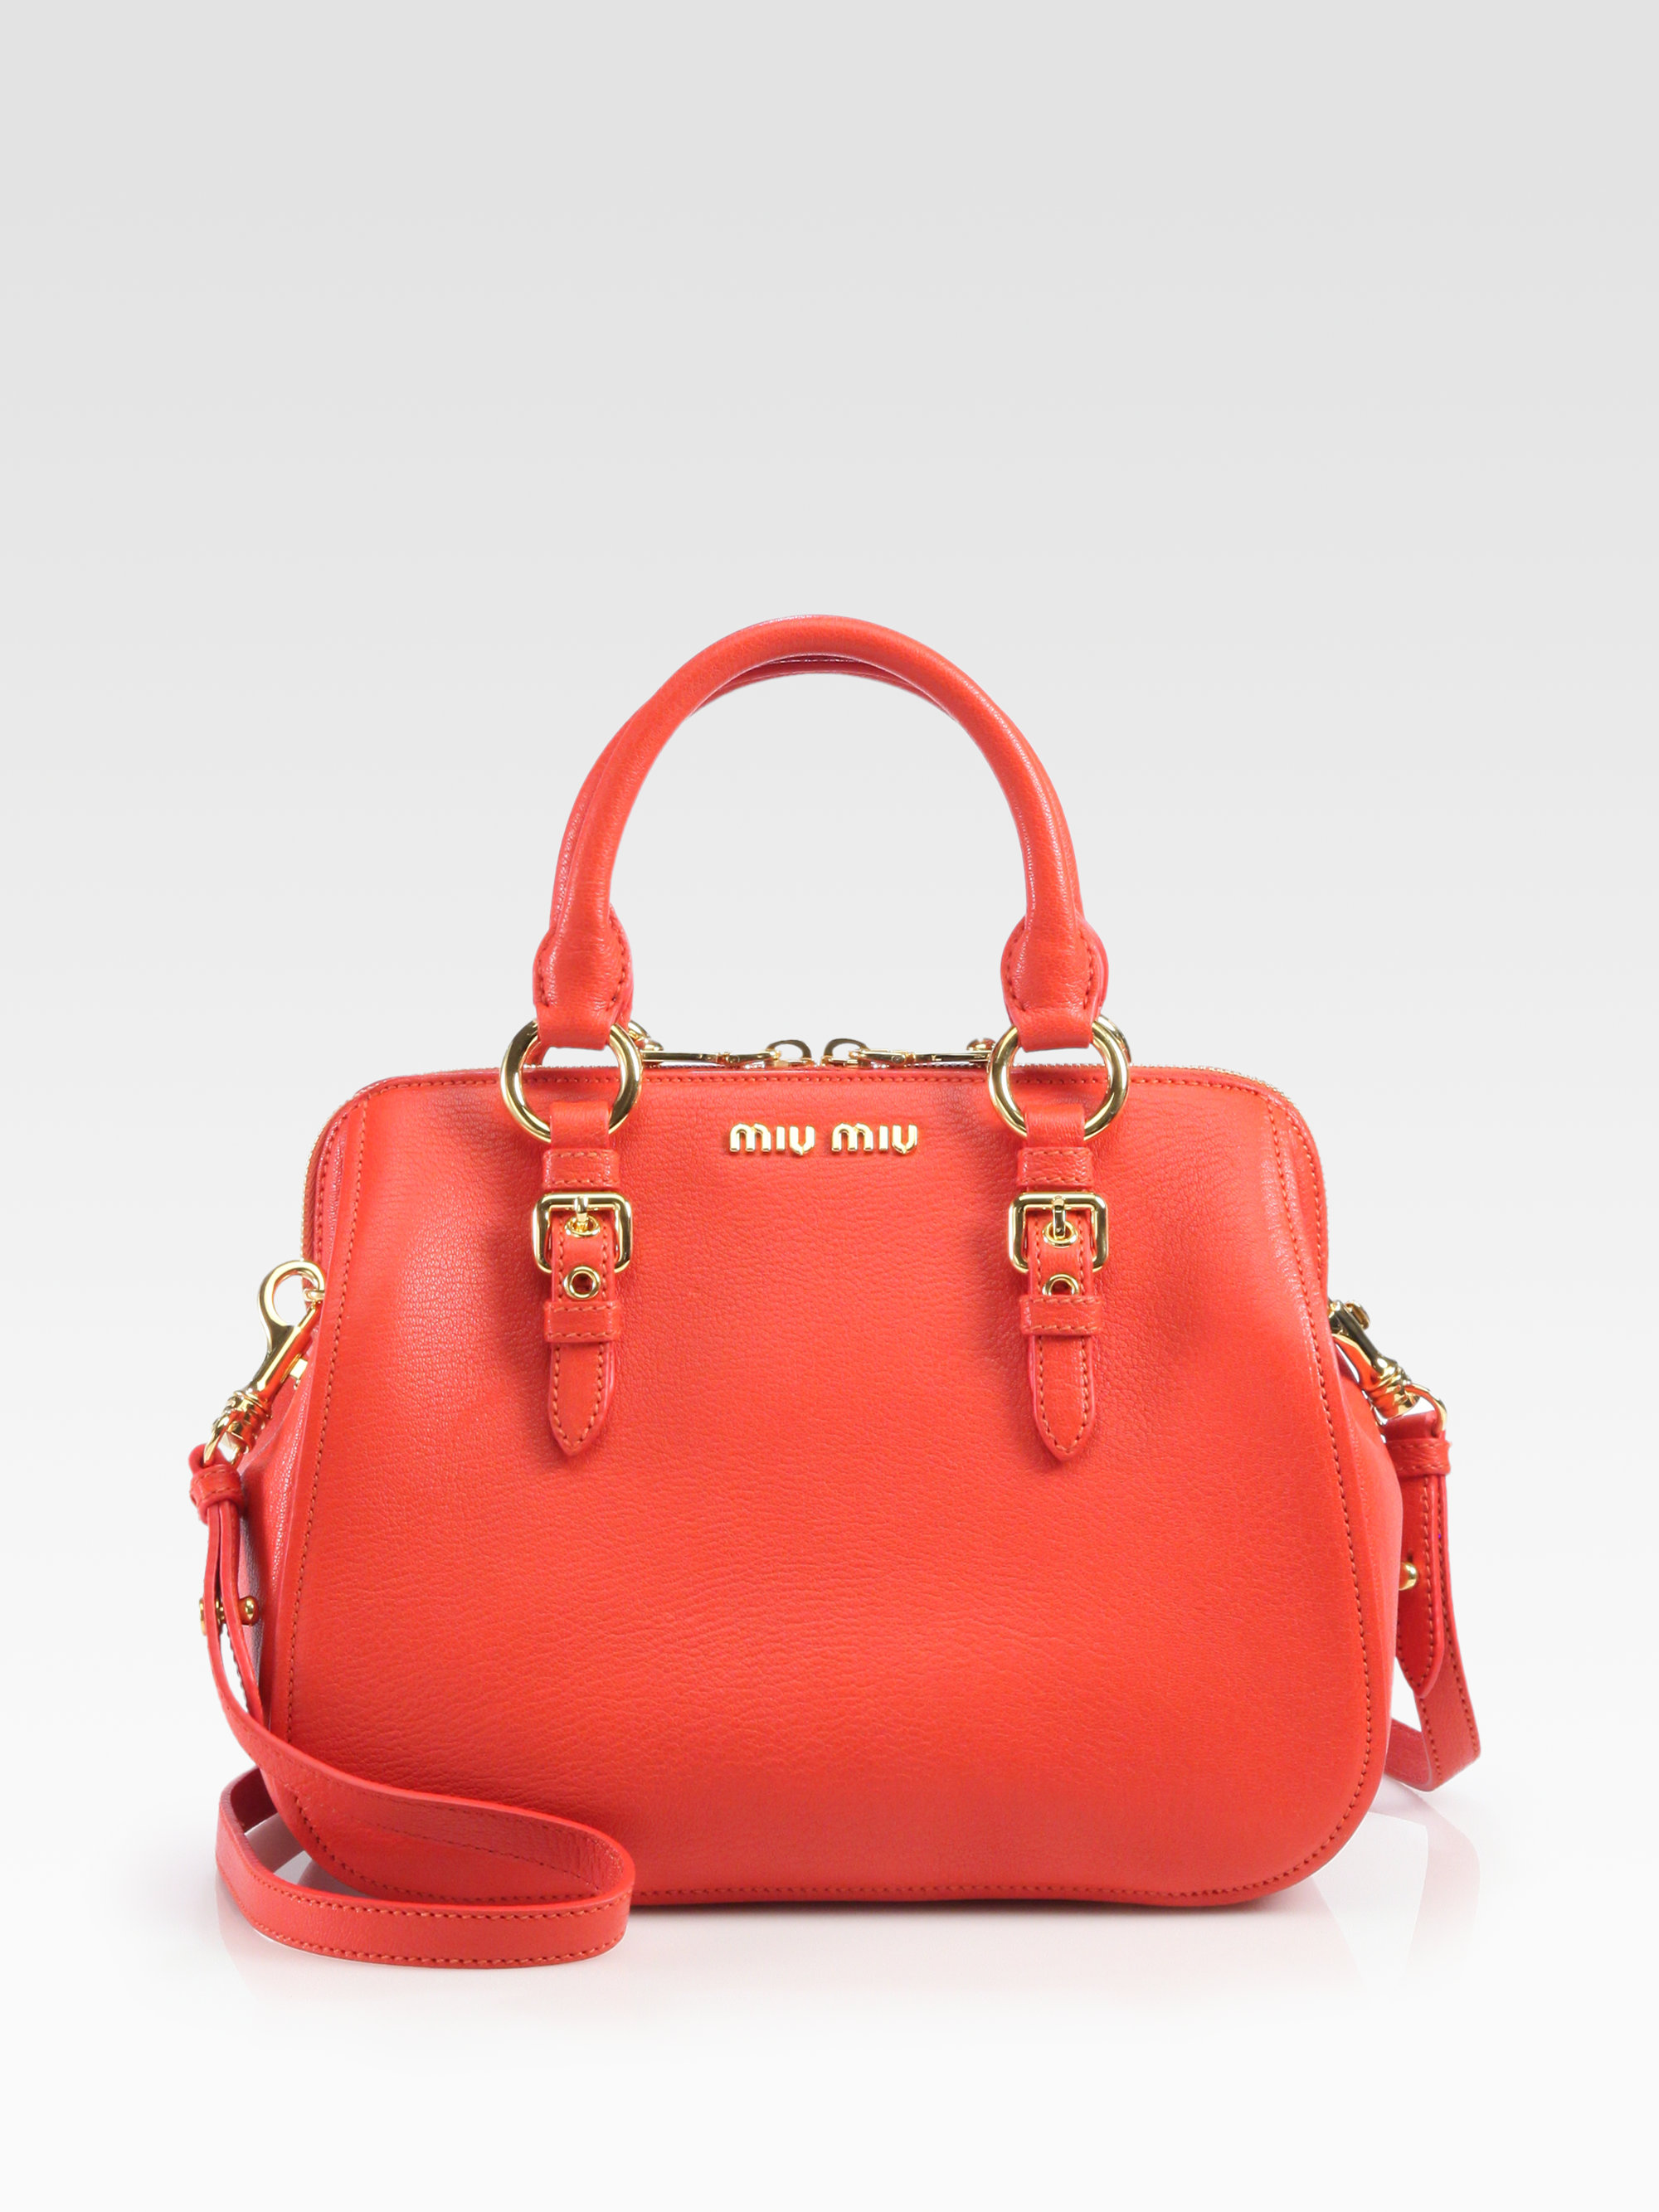 Lyst - Miu Miu Madras Leather Top Handle Bag in Red f8a5be5f7f